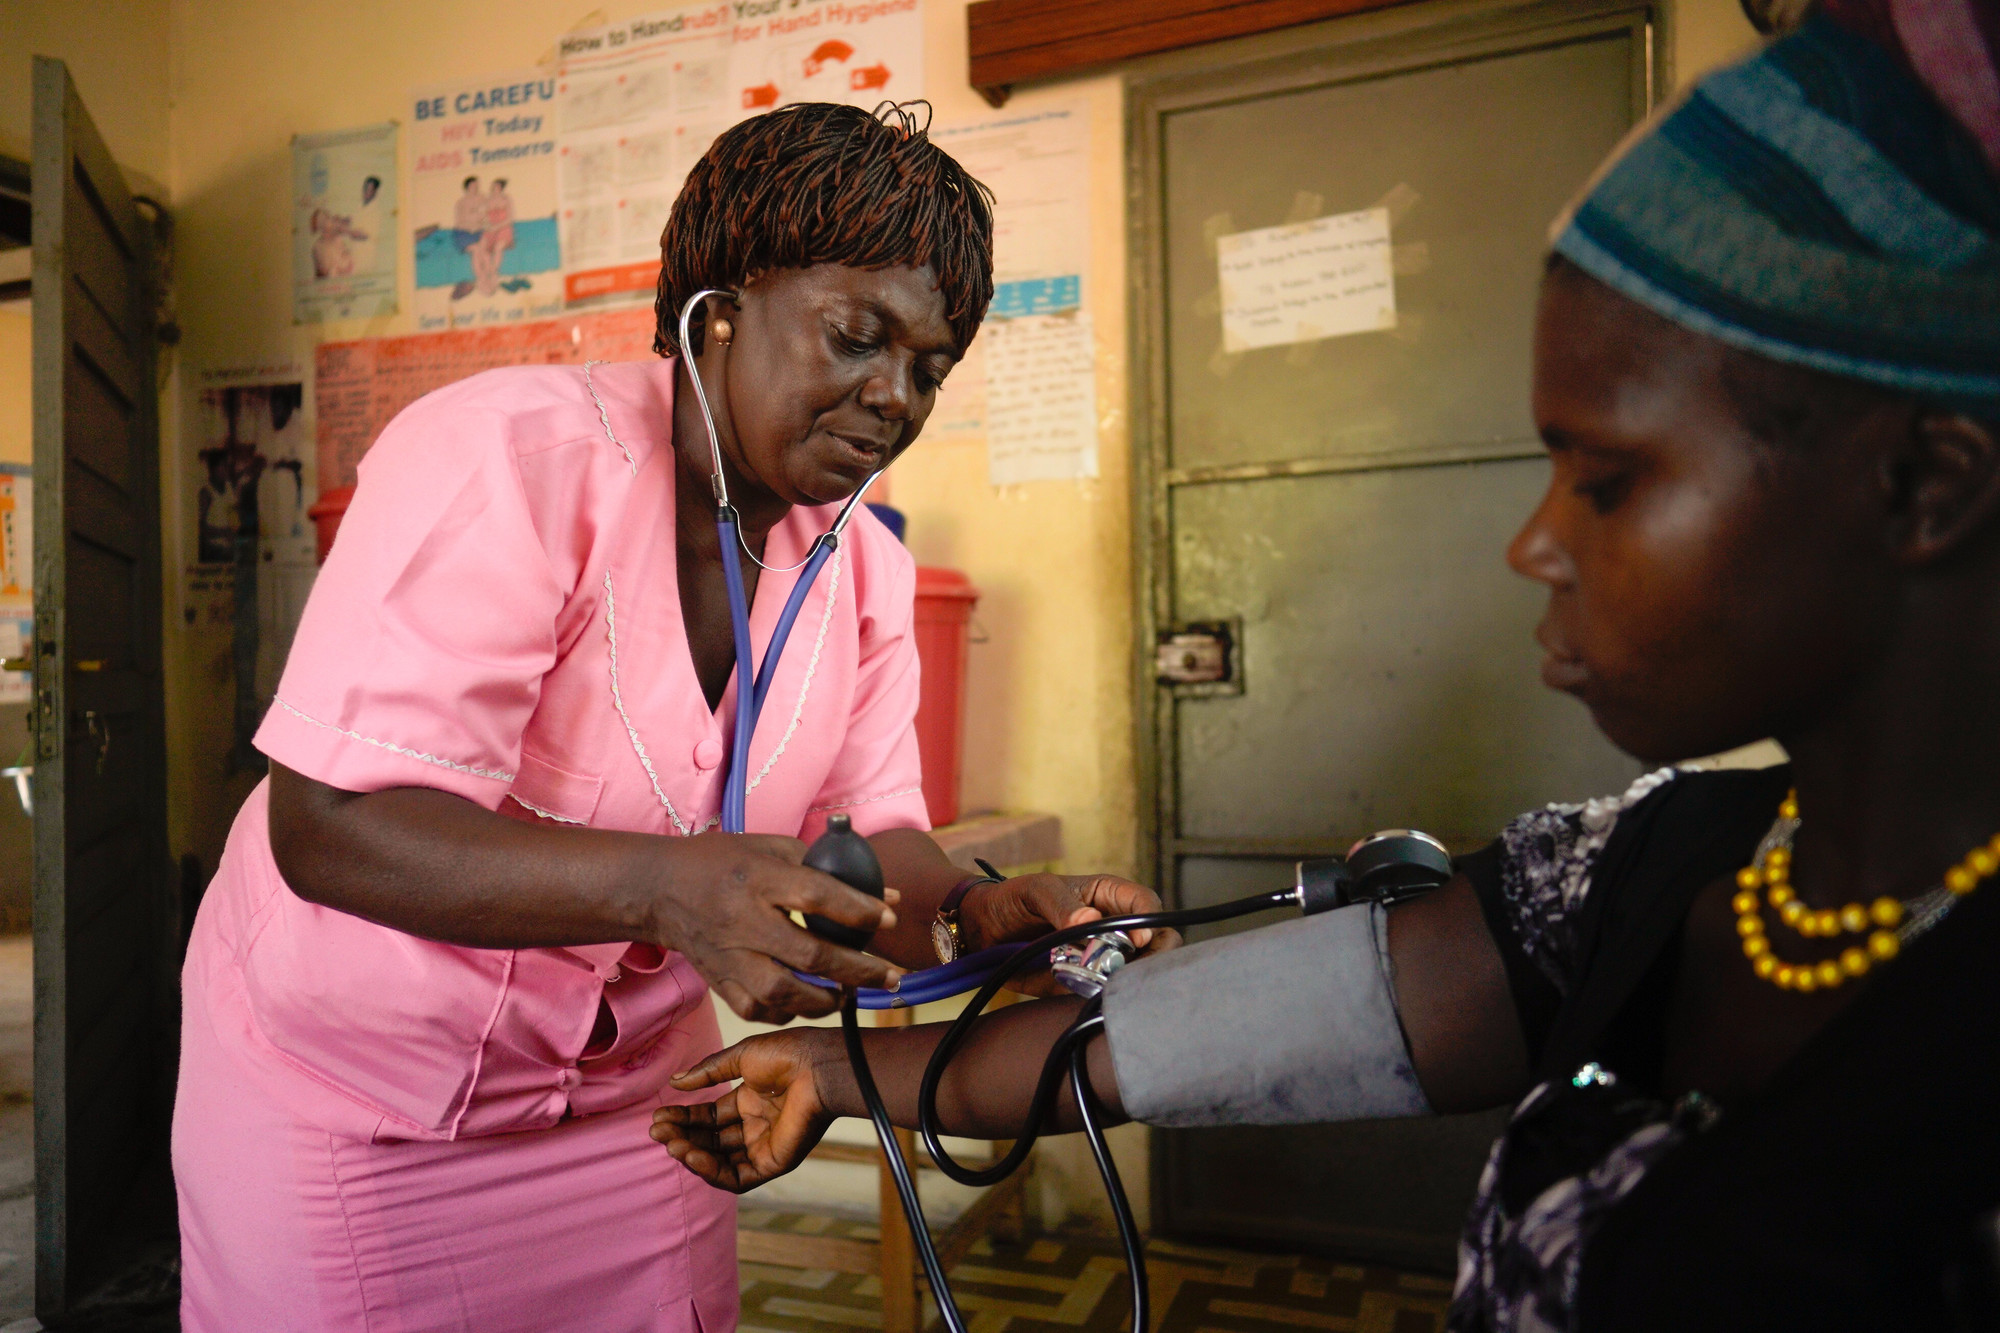 A female health care worker checks the blood pressure of a woman.